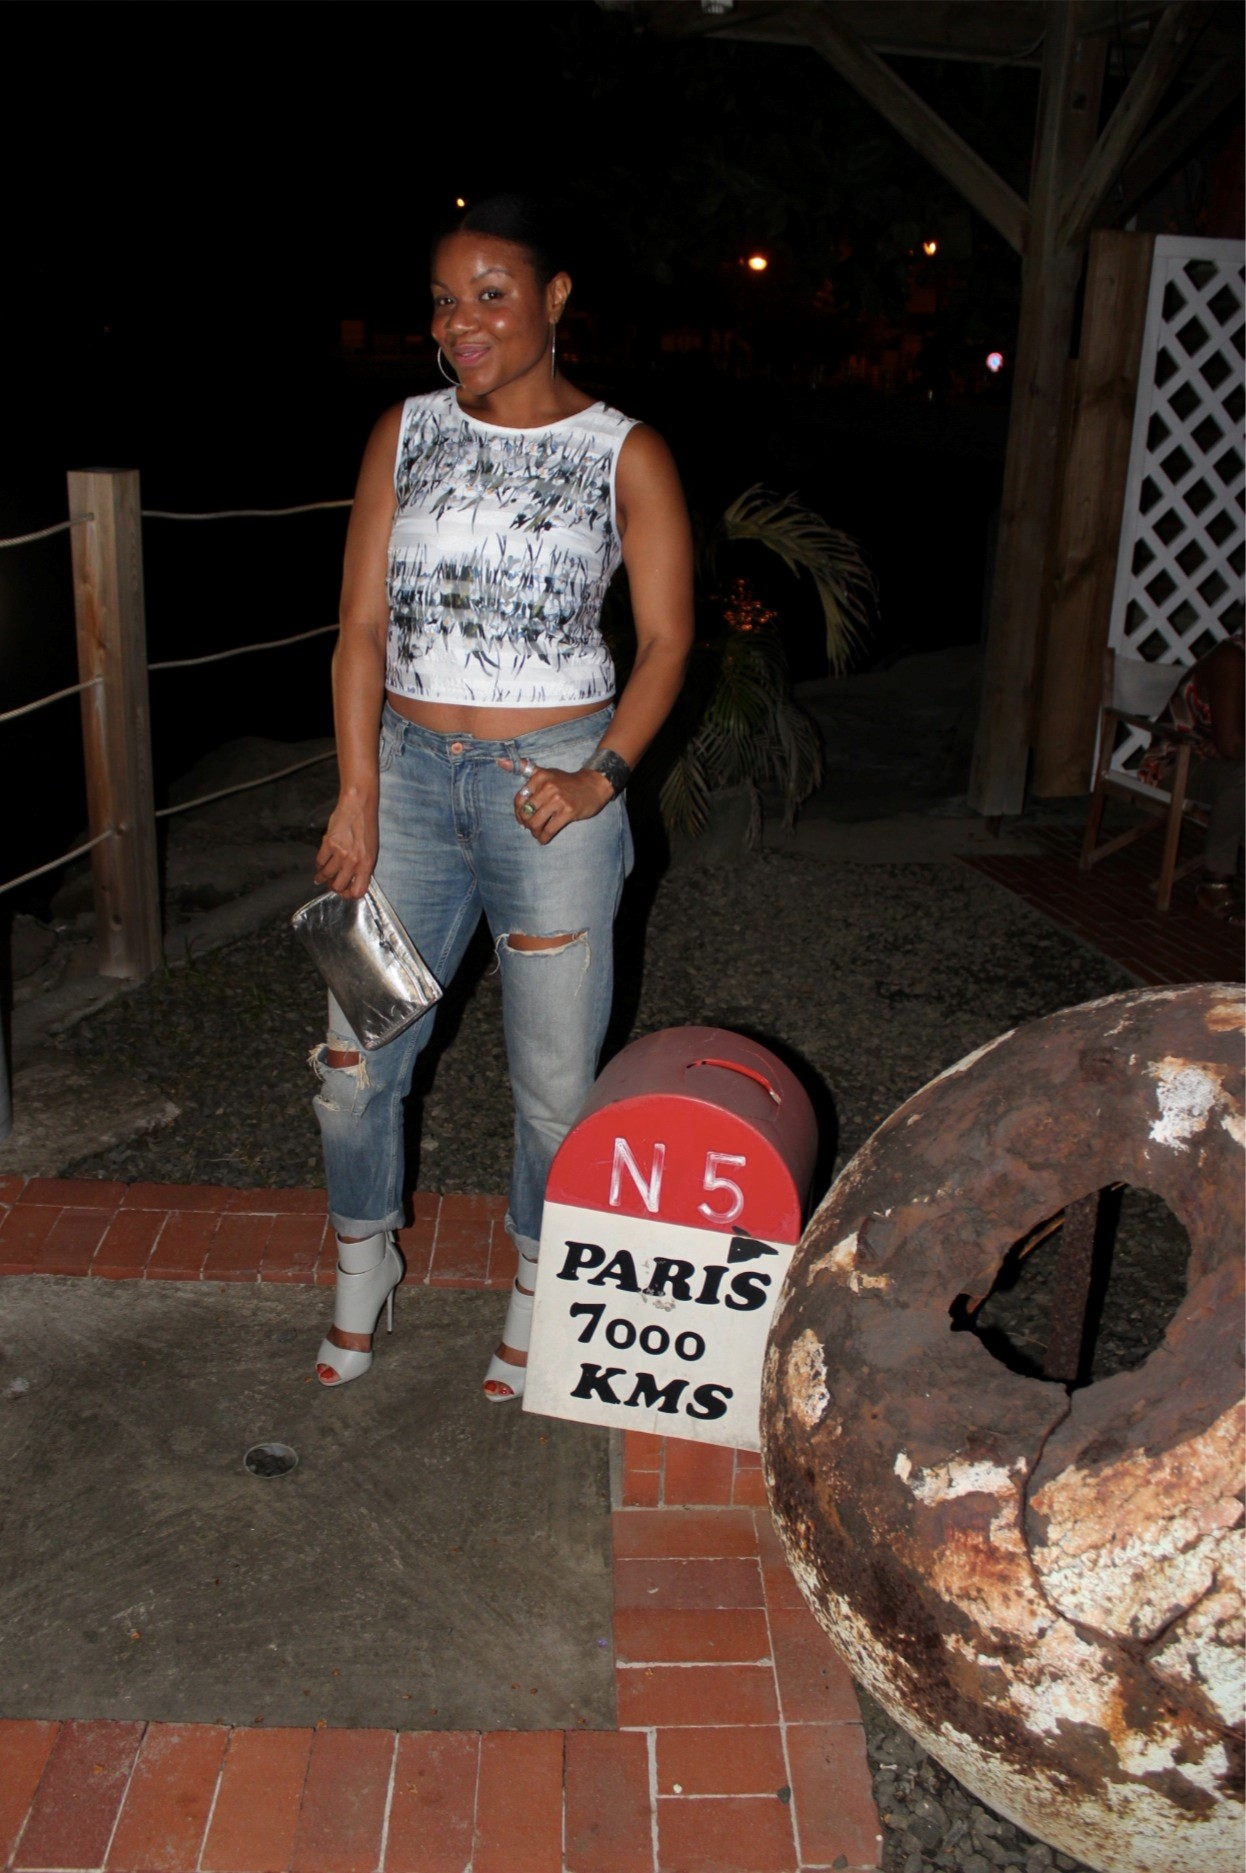 PHOTO BY METANYOA (MARTINIQUE)